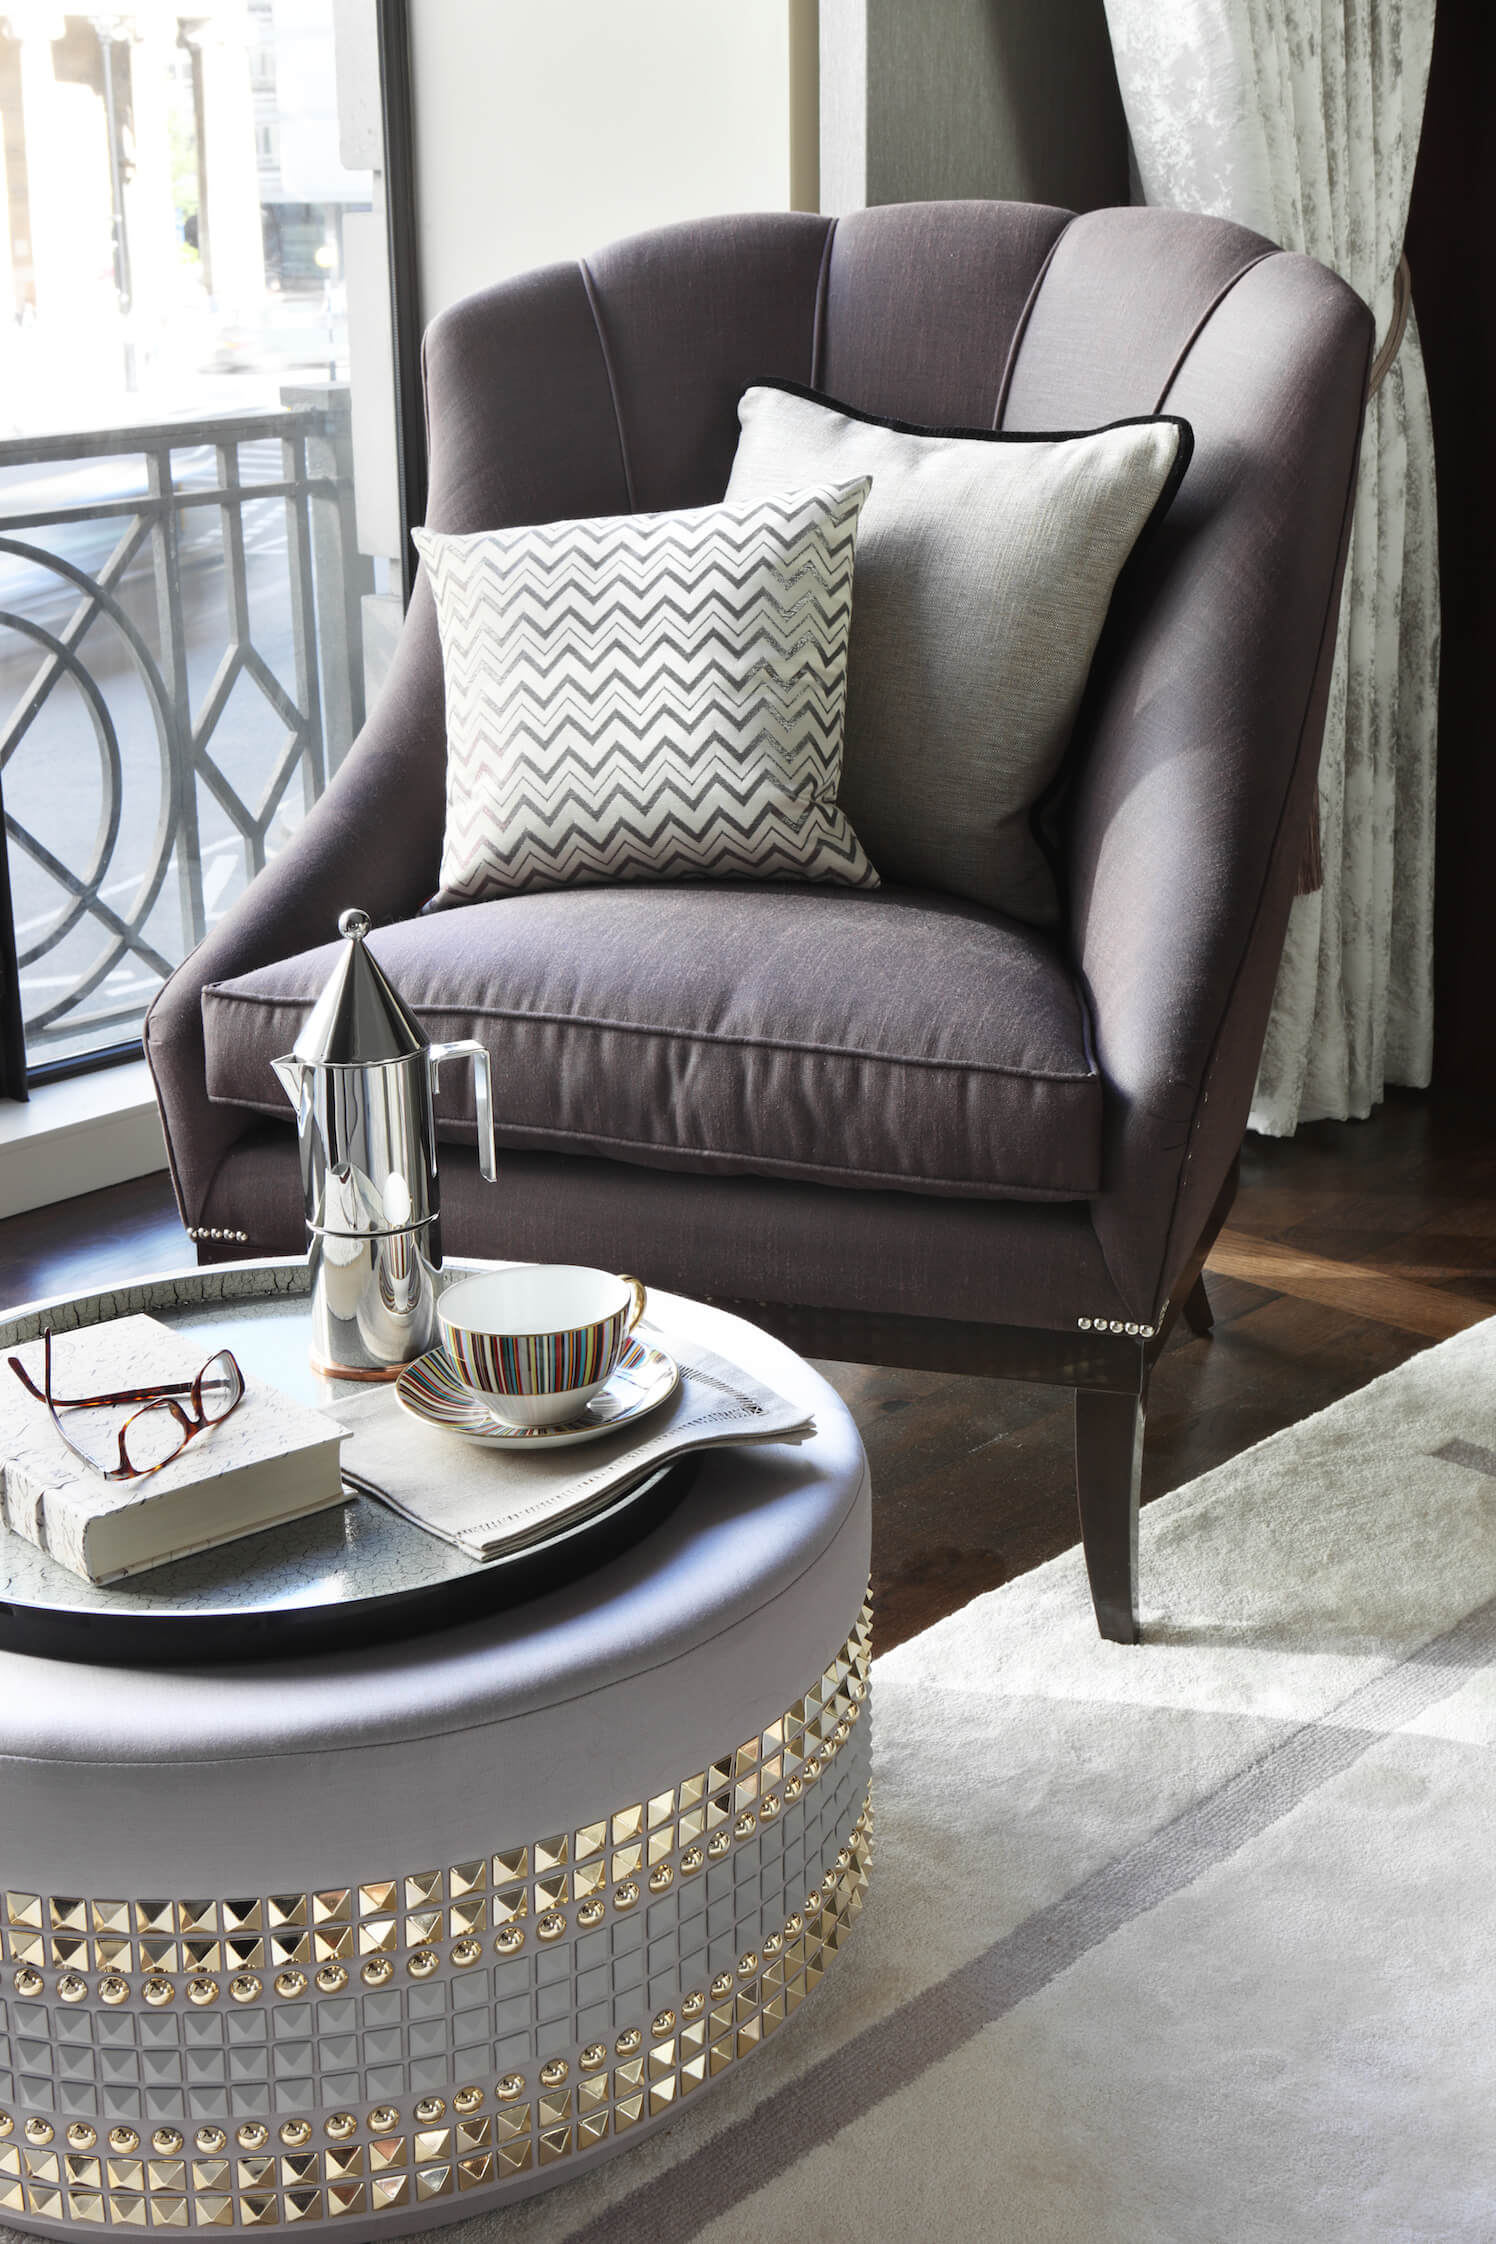 Sumptuous tonal fabrics contrast and accentuate the contemporary stud detailing on this Lee Broom footstool beside the balcony entrance.